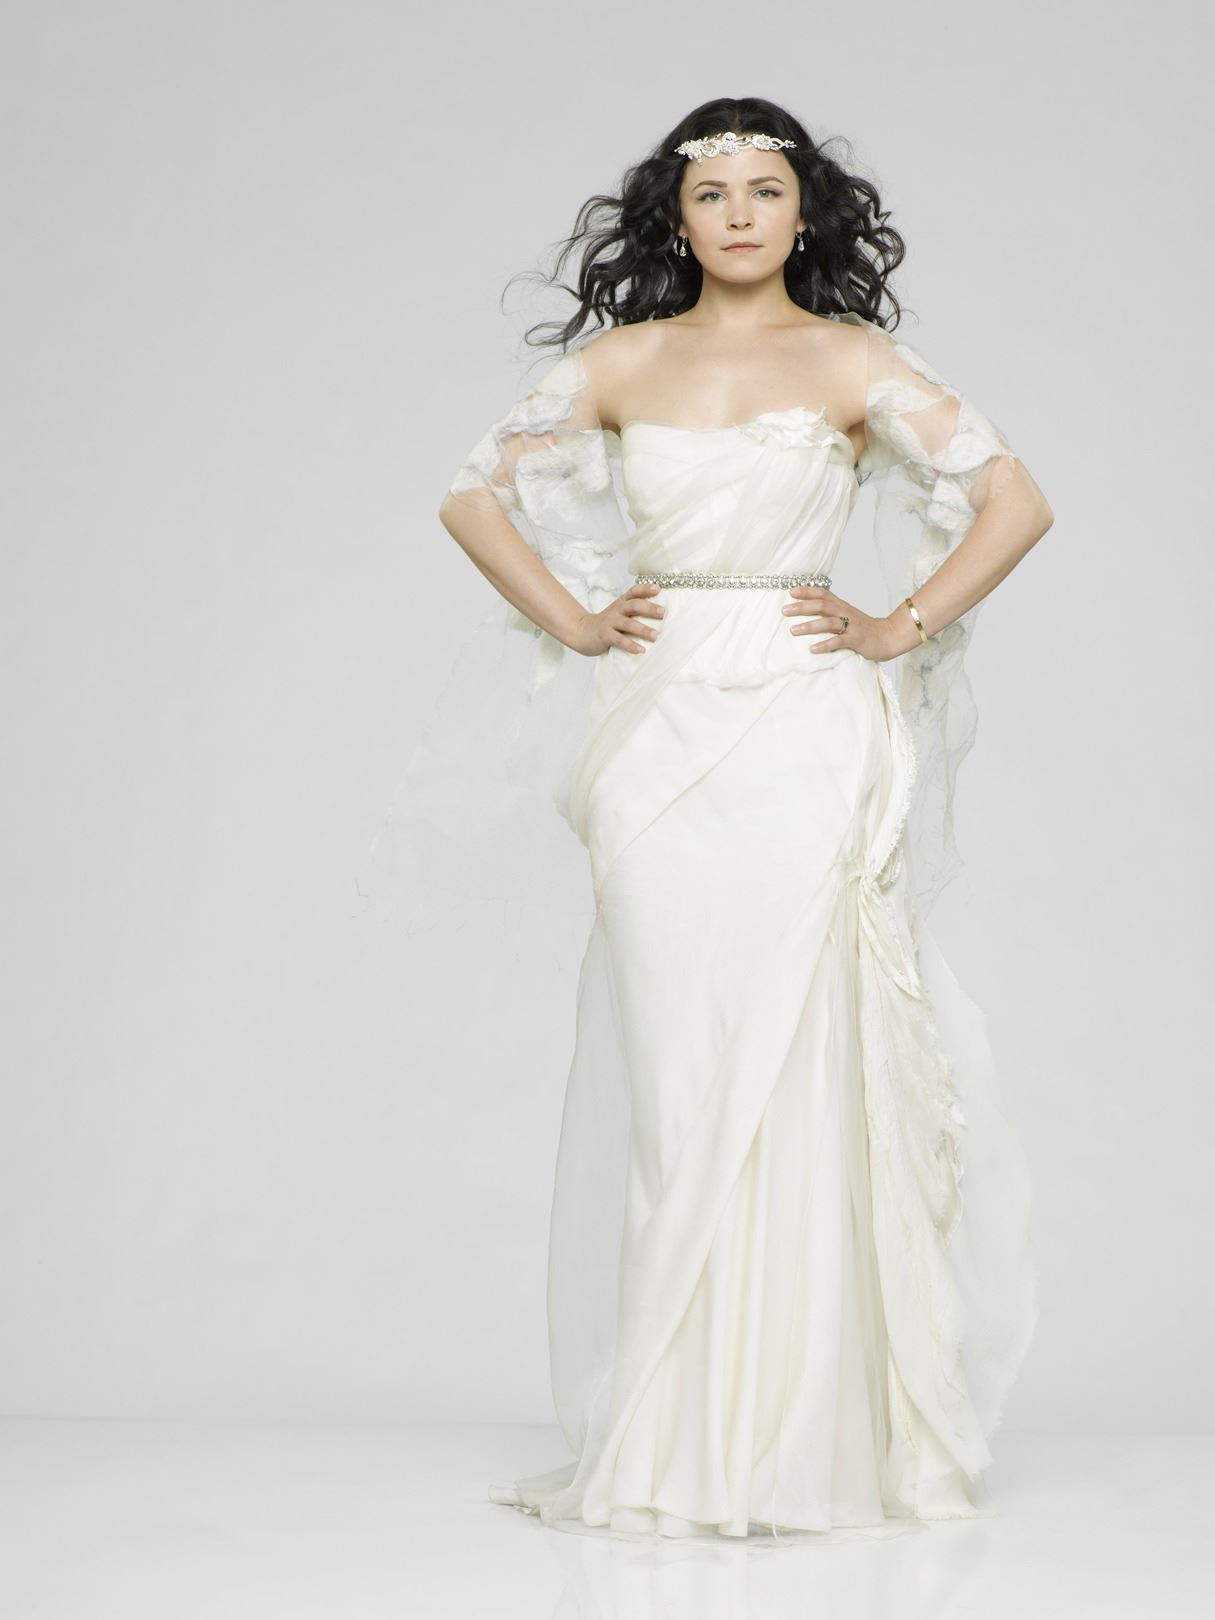 Snow White Vera Wang Wedding Dress From Once Upon A Time Season 3 Promotional Photos